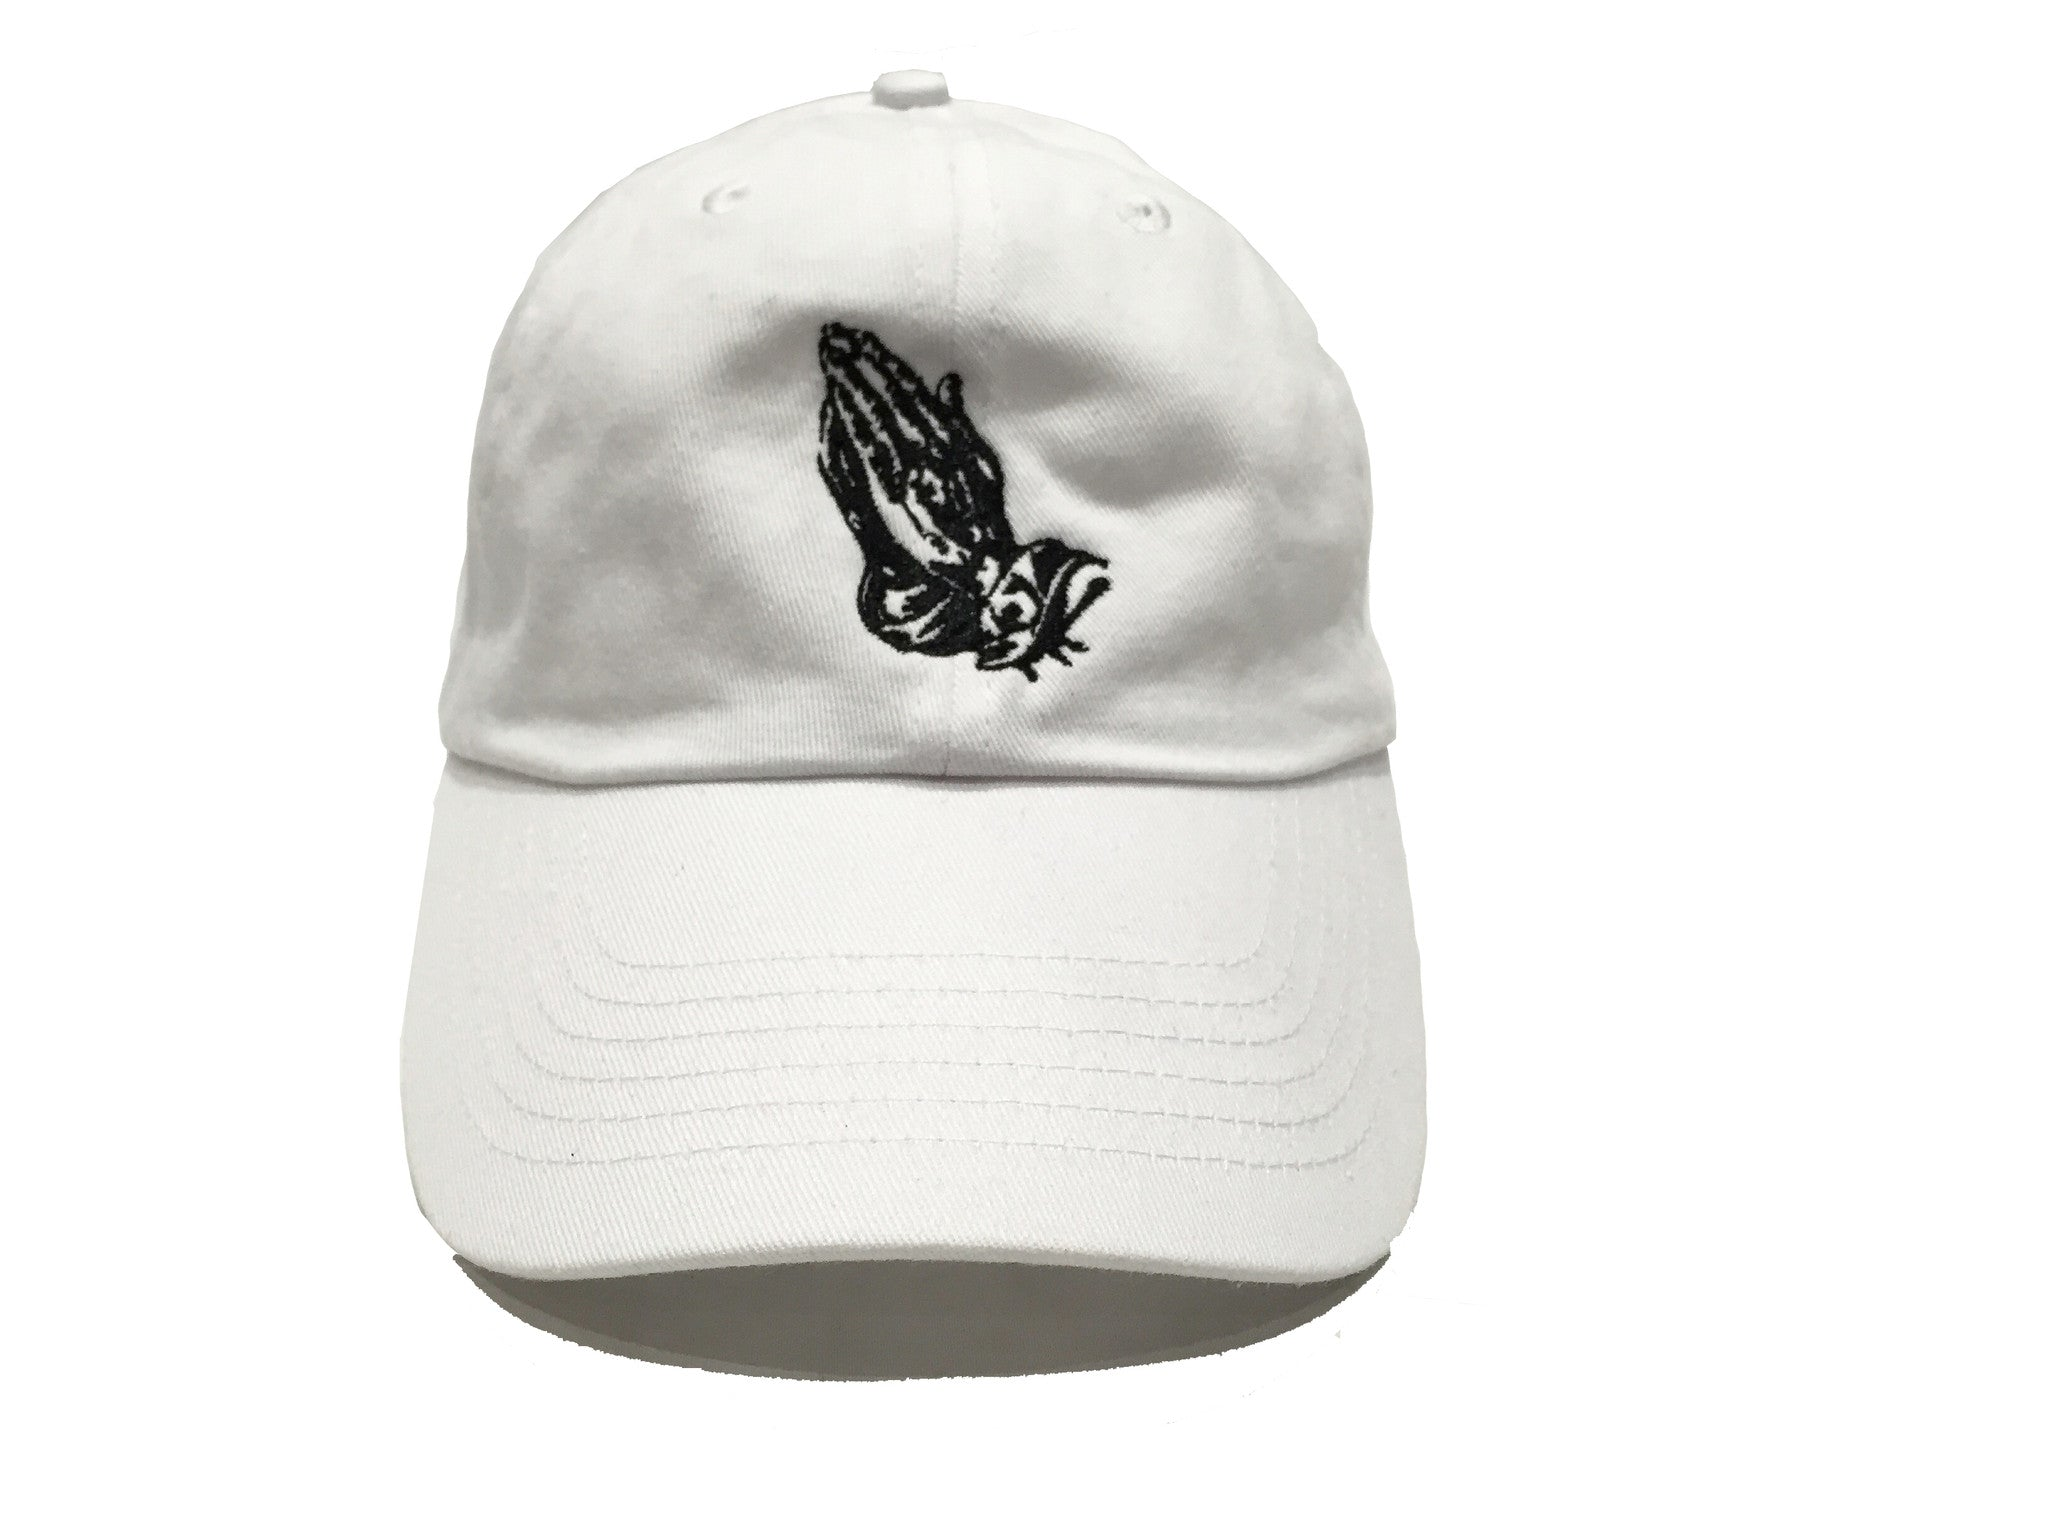 Praying Hands Dad Hat - White